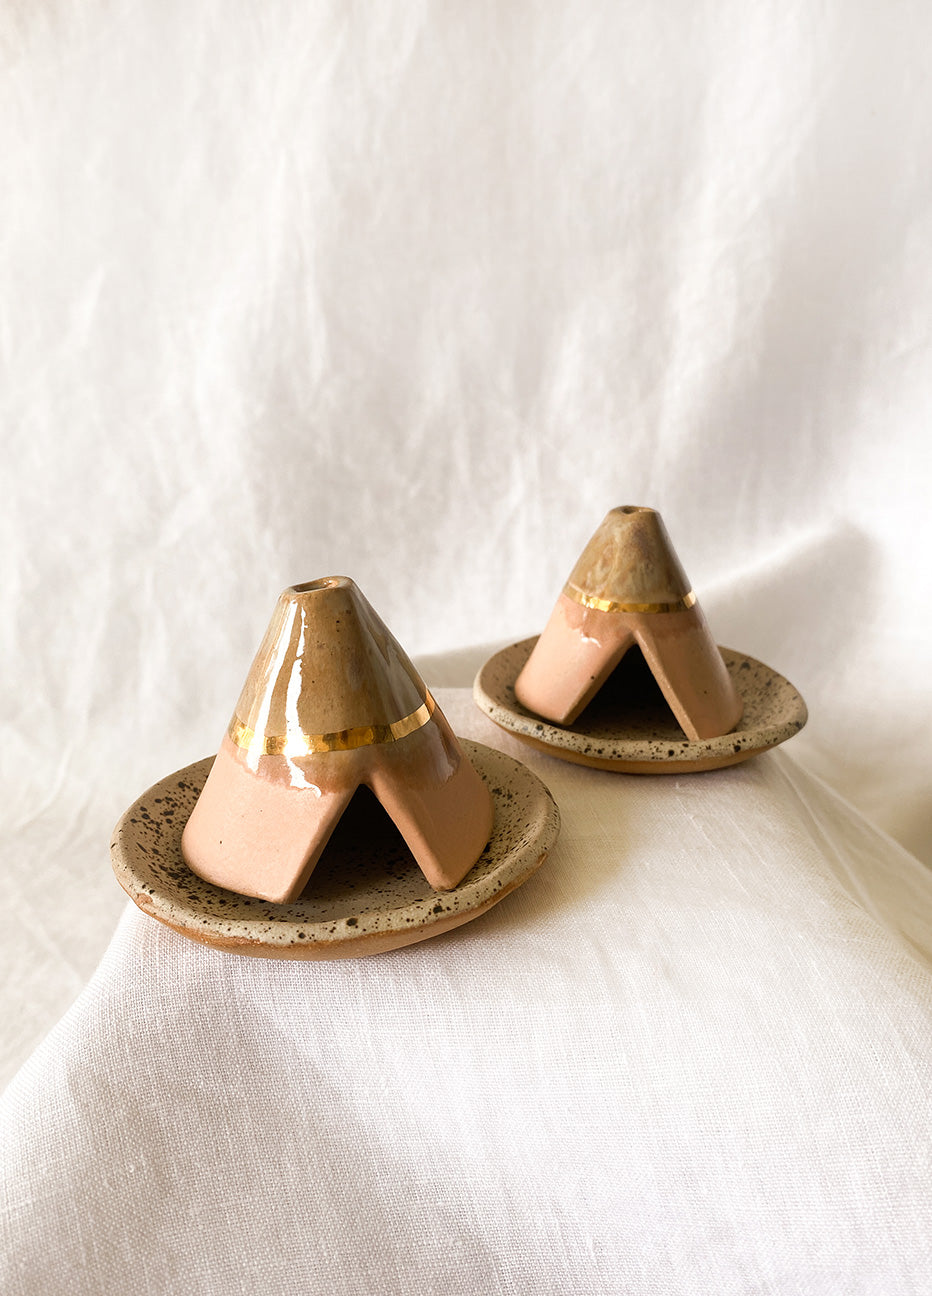 Teepee Incense Burner and Plate